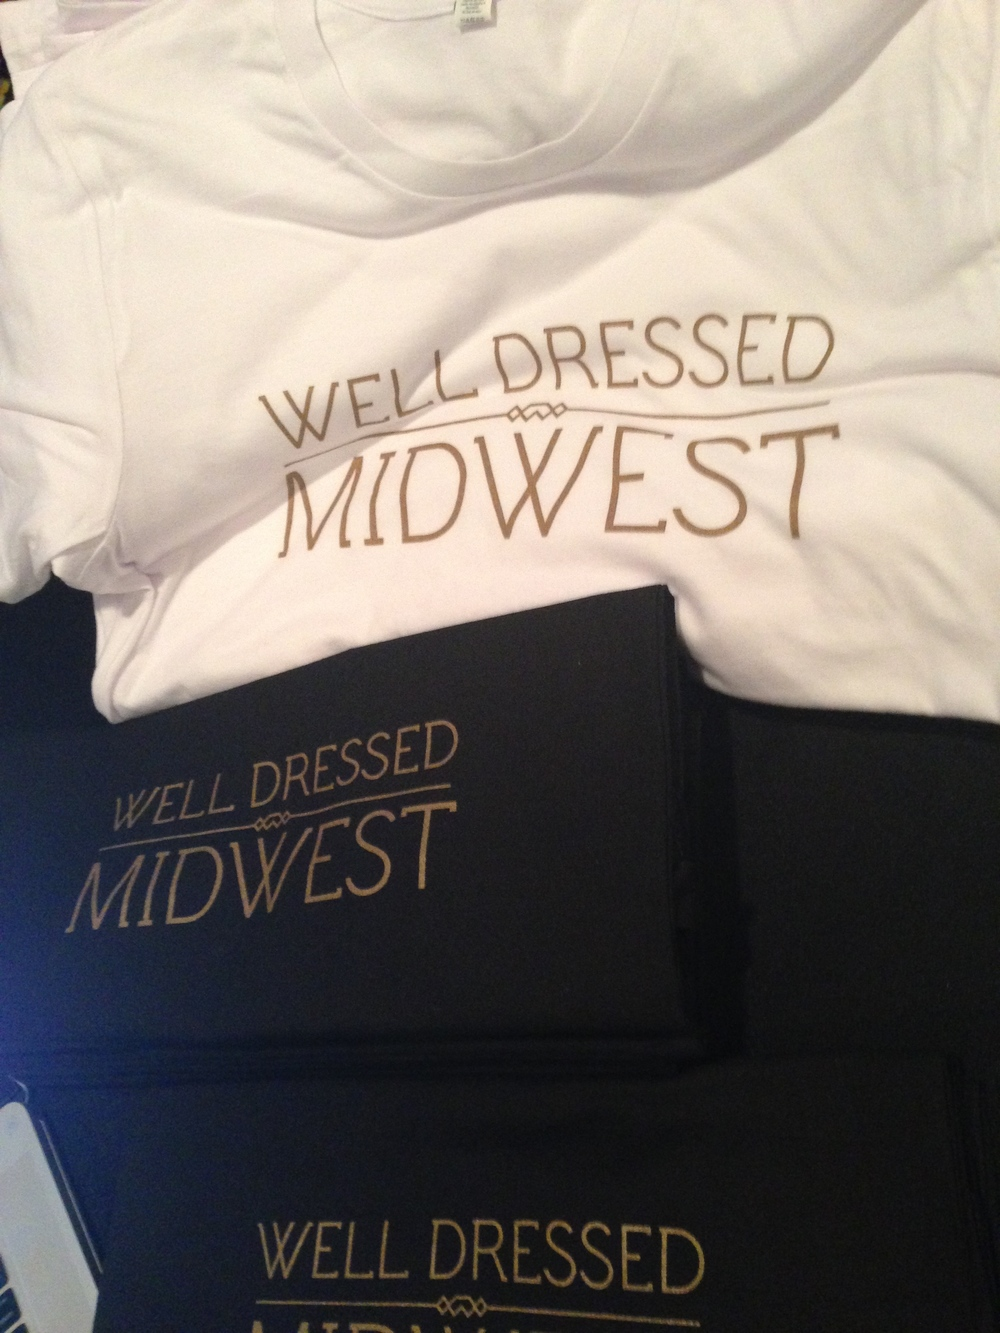 I made sure to grab an inaugural 'Well Dressed Midwest' shirt! I'm so excited to get involved with this organization and learn how to take my blogging to the next level!